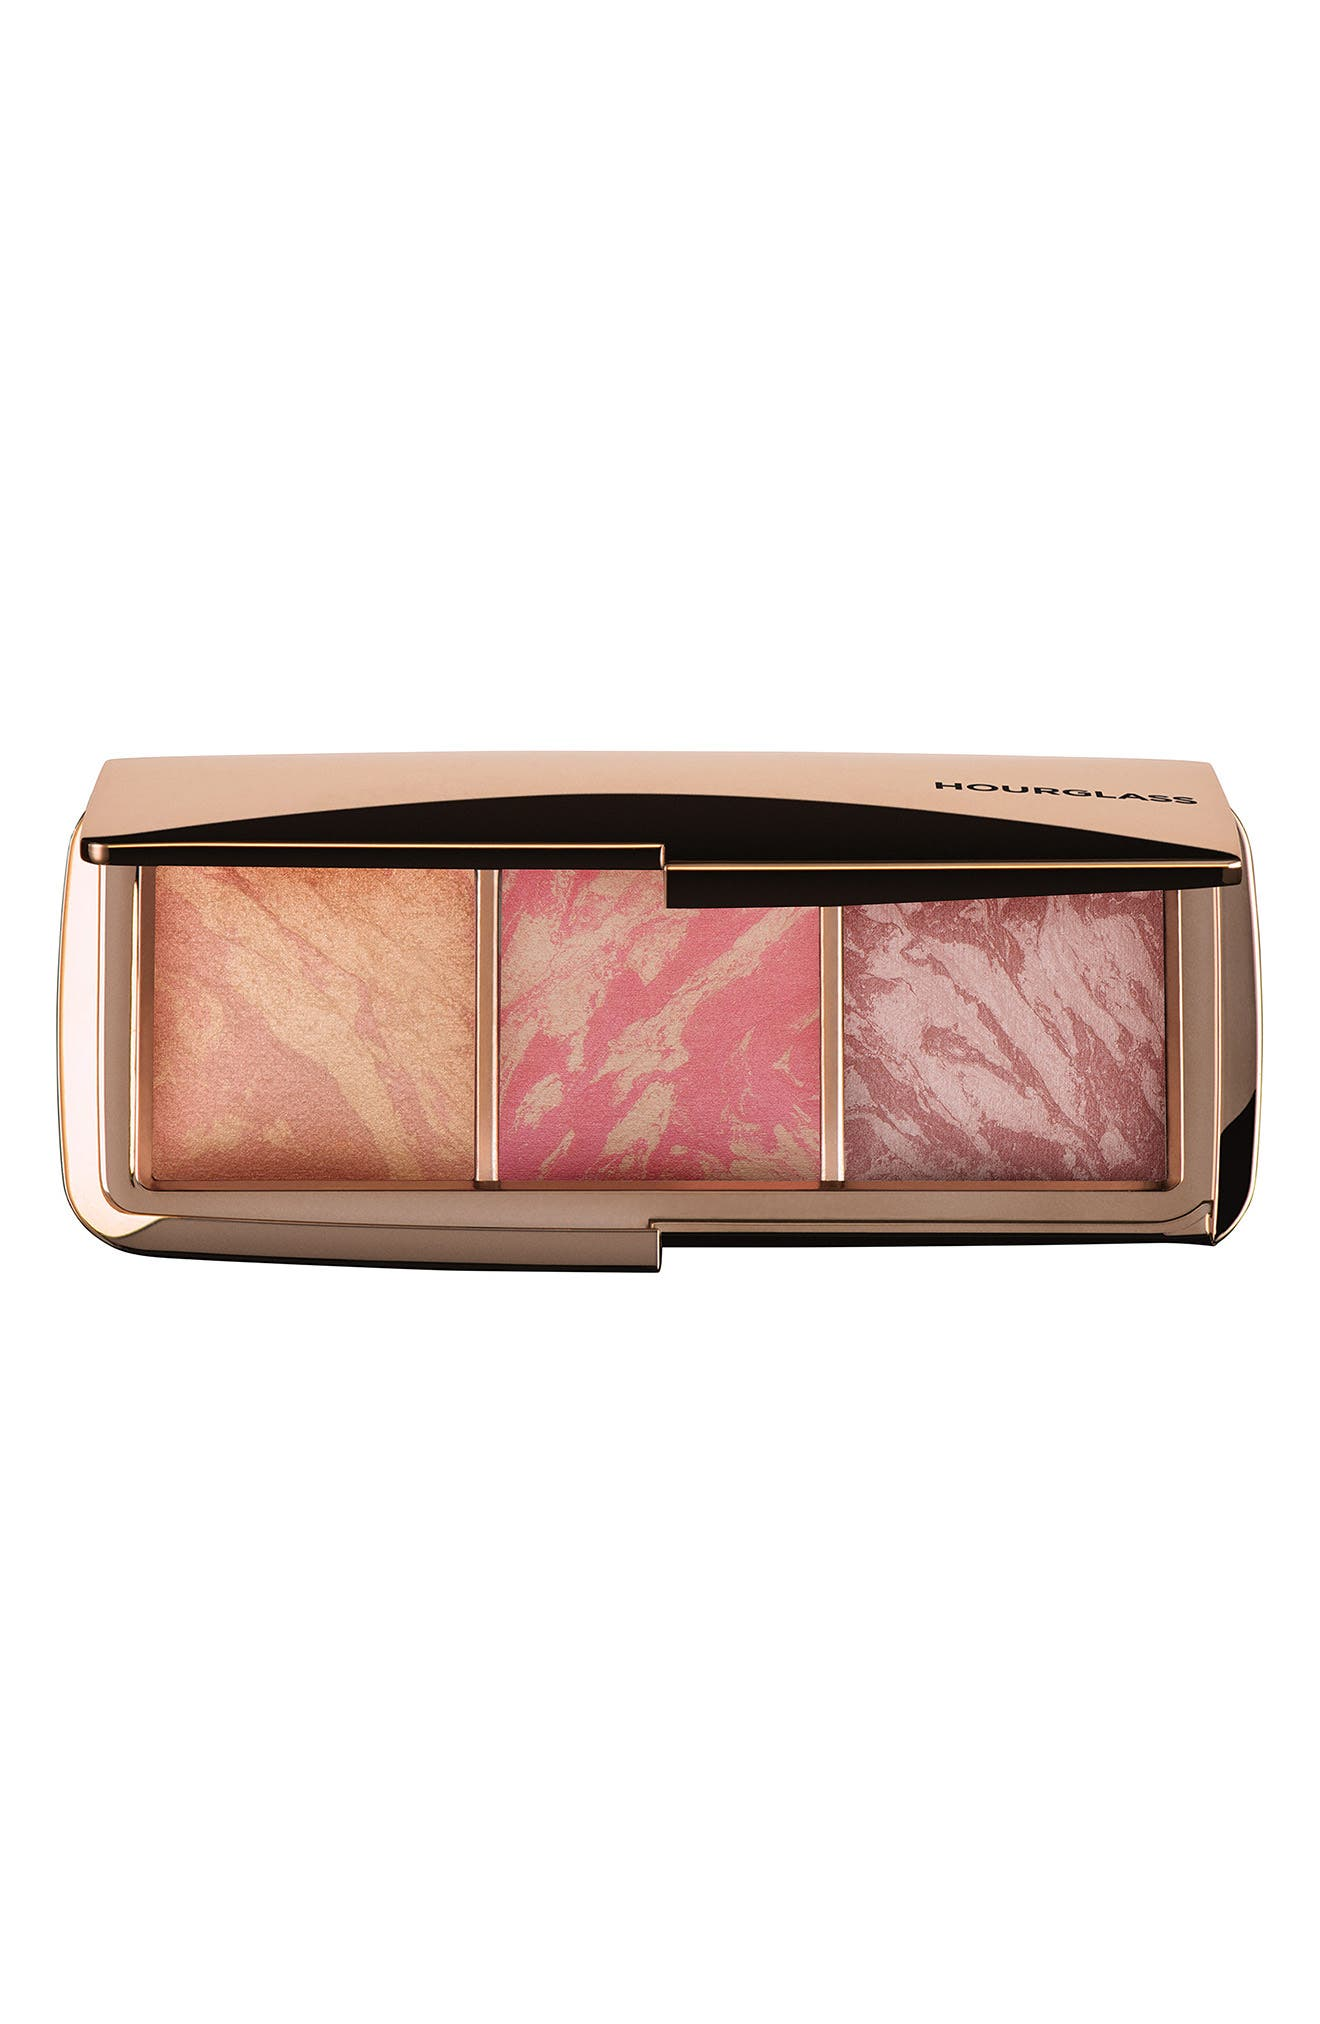 HOURGLASS, Ambient<sup>®</sup> Lighting Blush Palette, Main thumbnail 1, color, 000